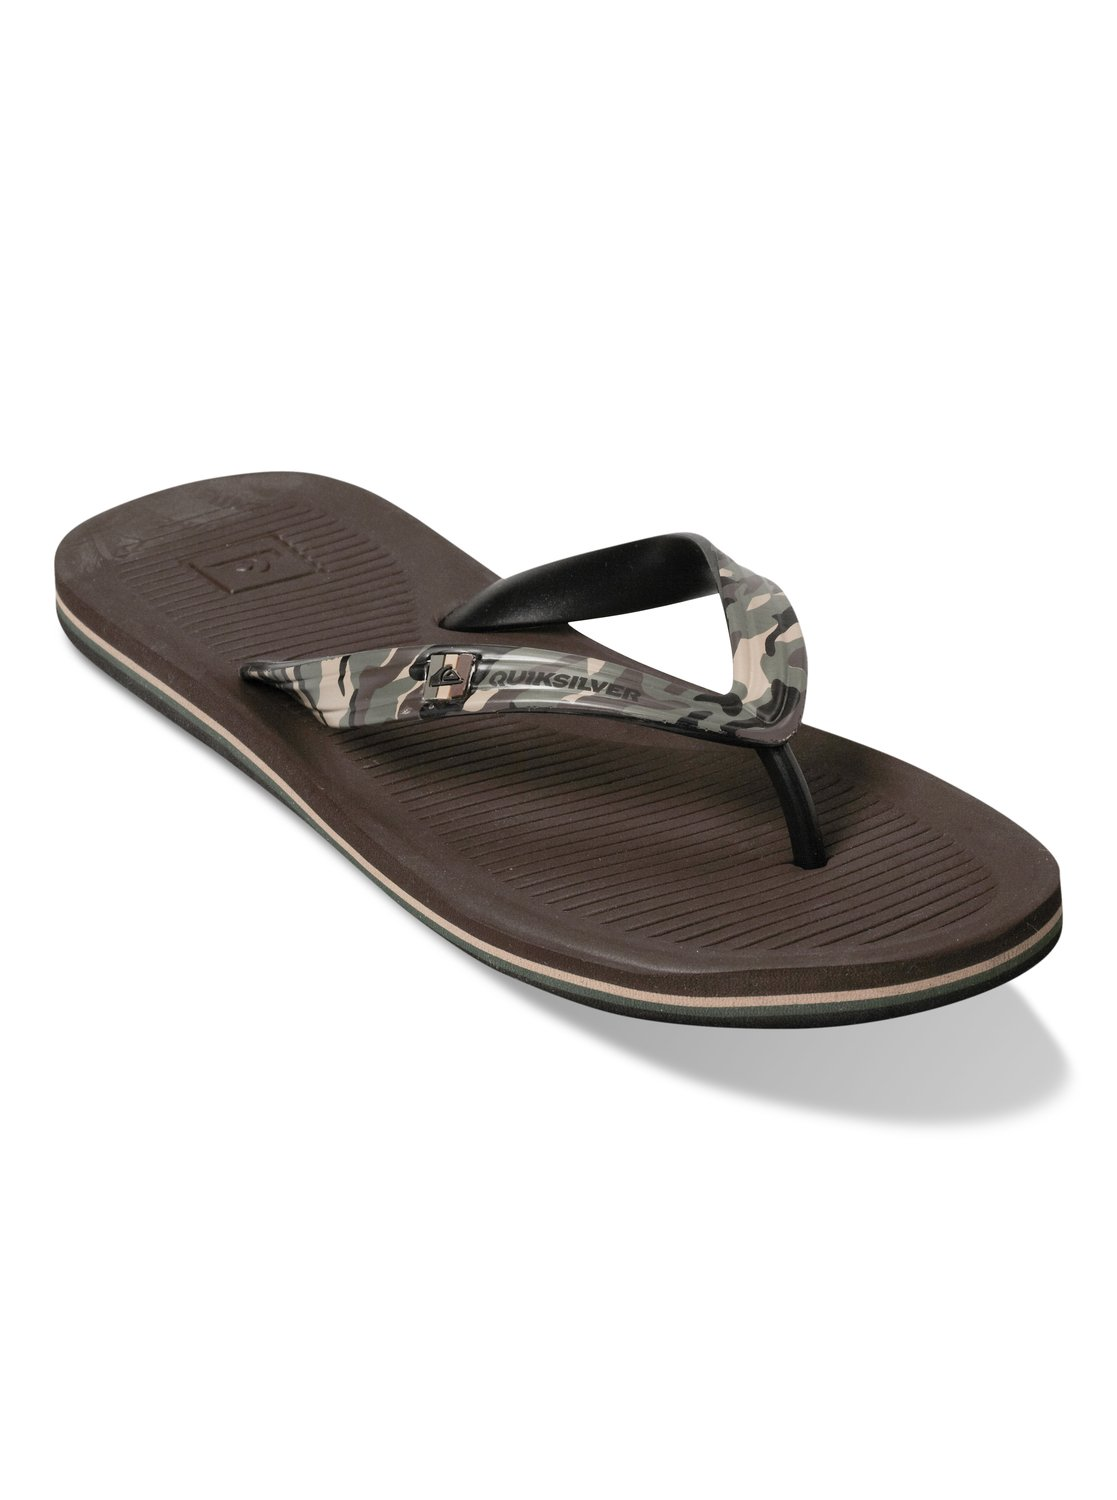 Quiksilver Haleiwa Print Sandals for Men Blue